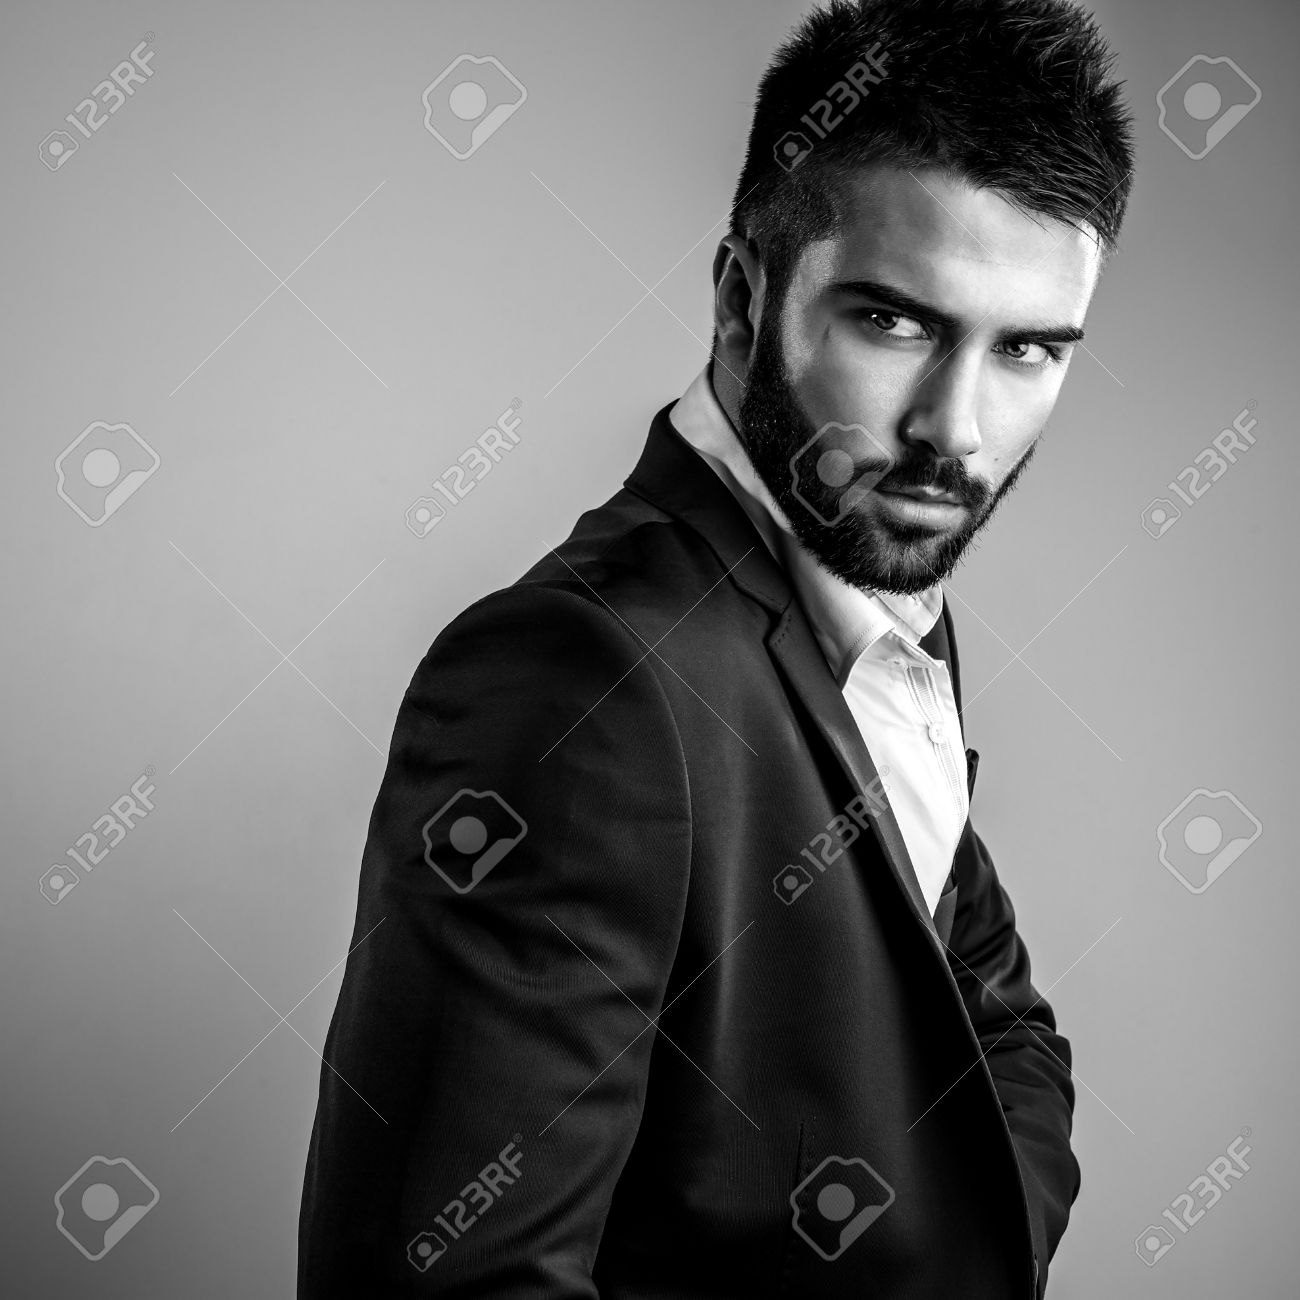 Elegant young handsome man black white studio fashion portrait